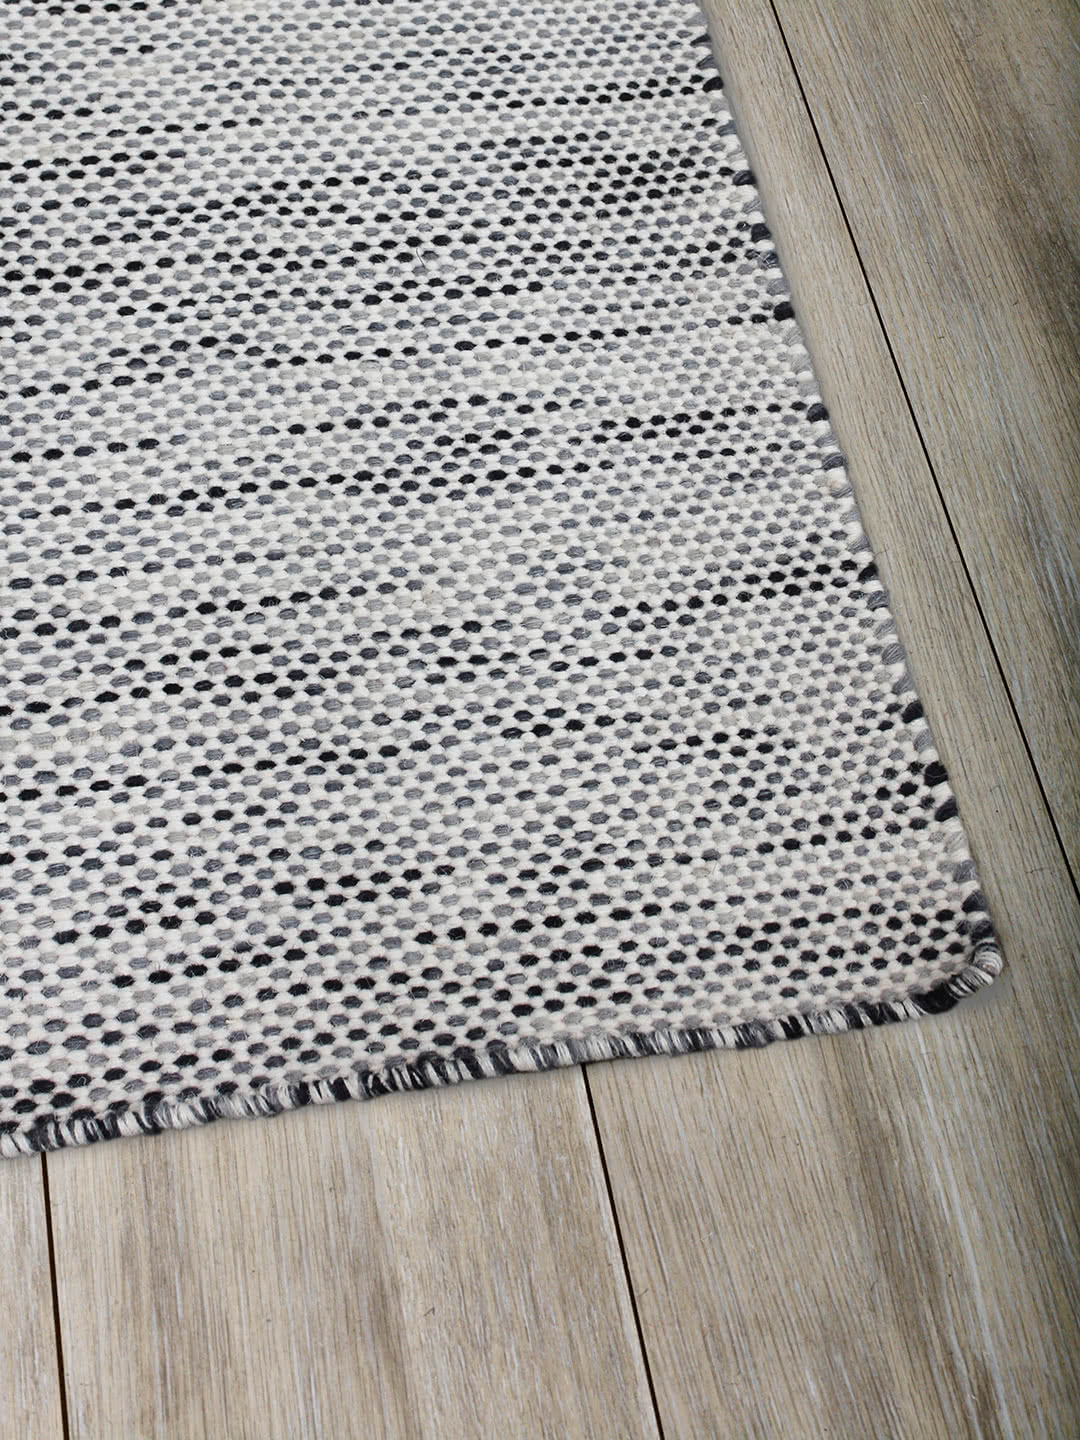 Charcoal Ivory pure wool rugs Perth